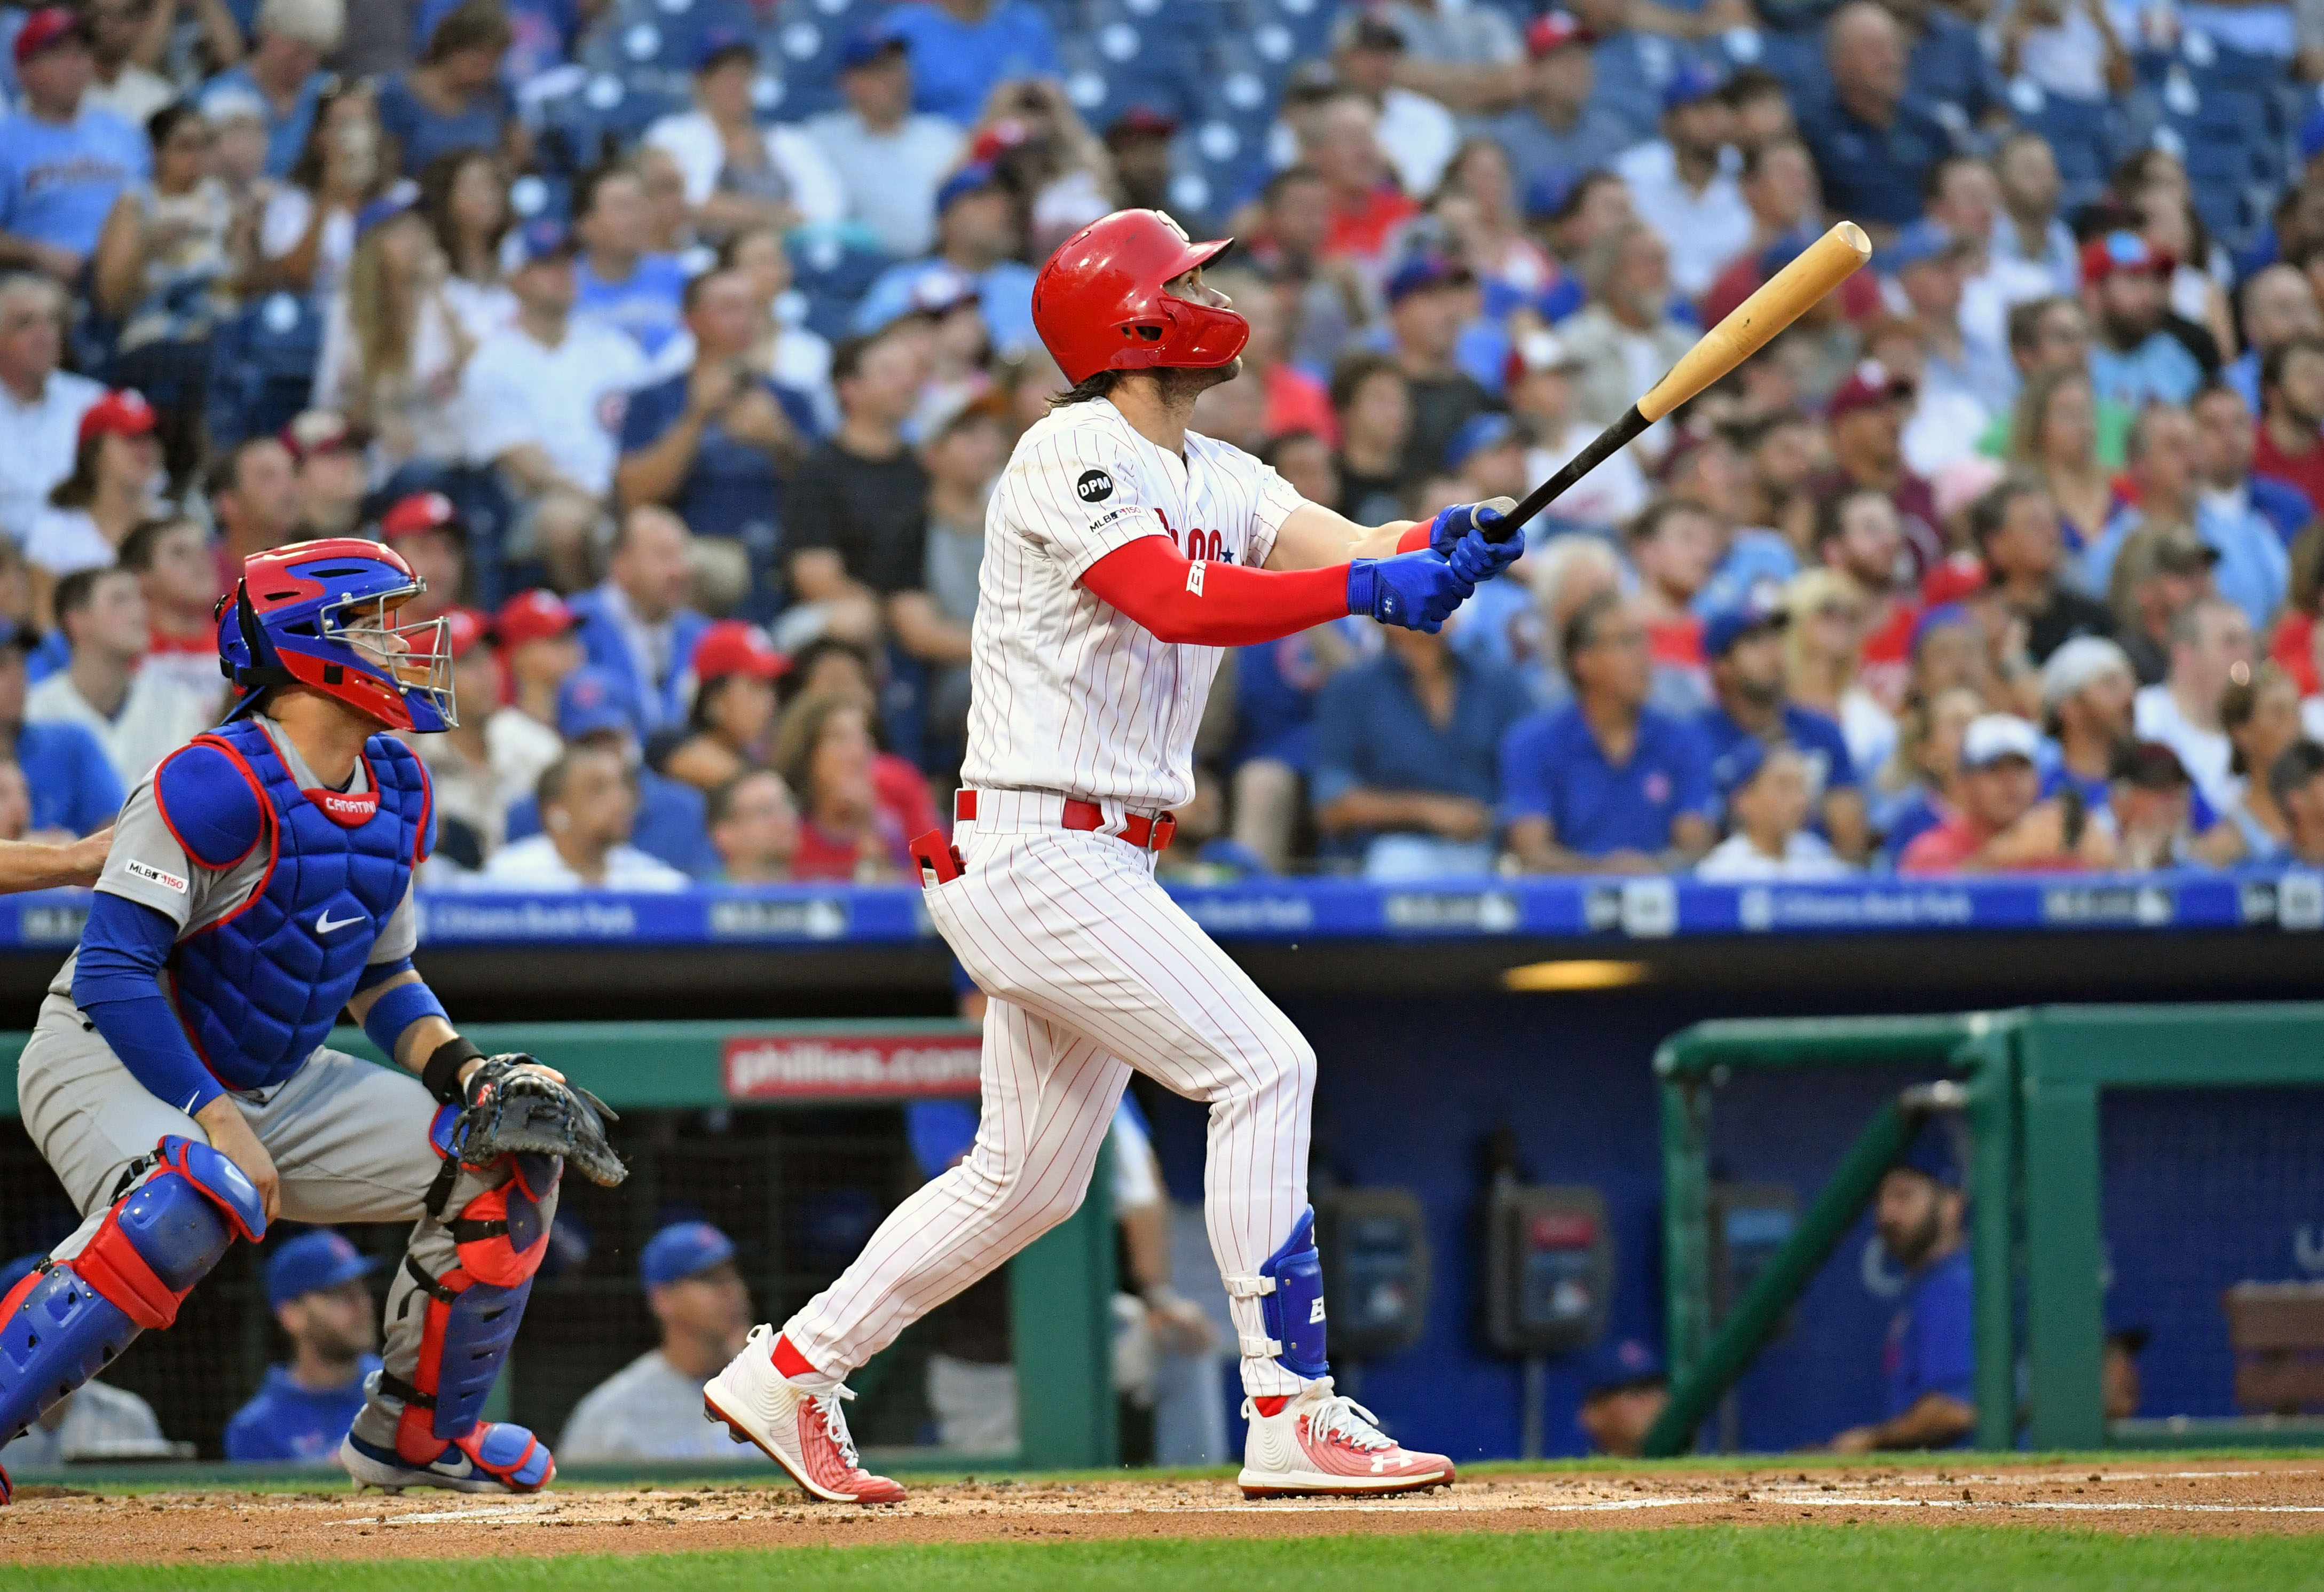 Philadelphia Phillies need Bryce Harper to stay hot at the plate